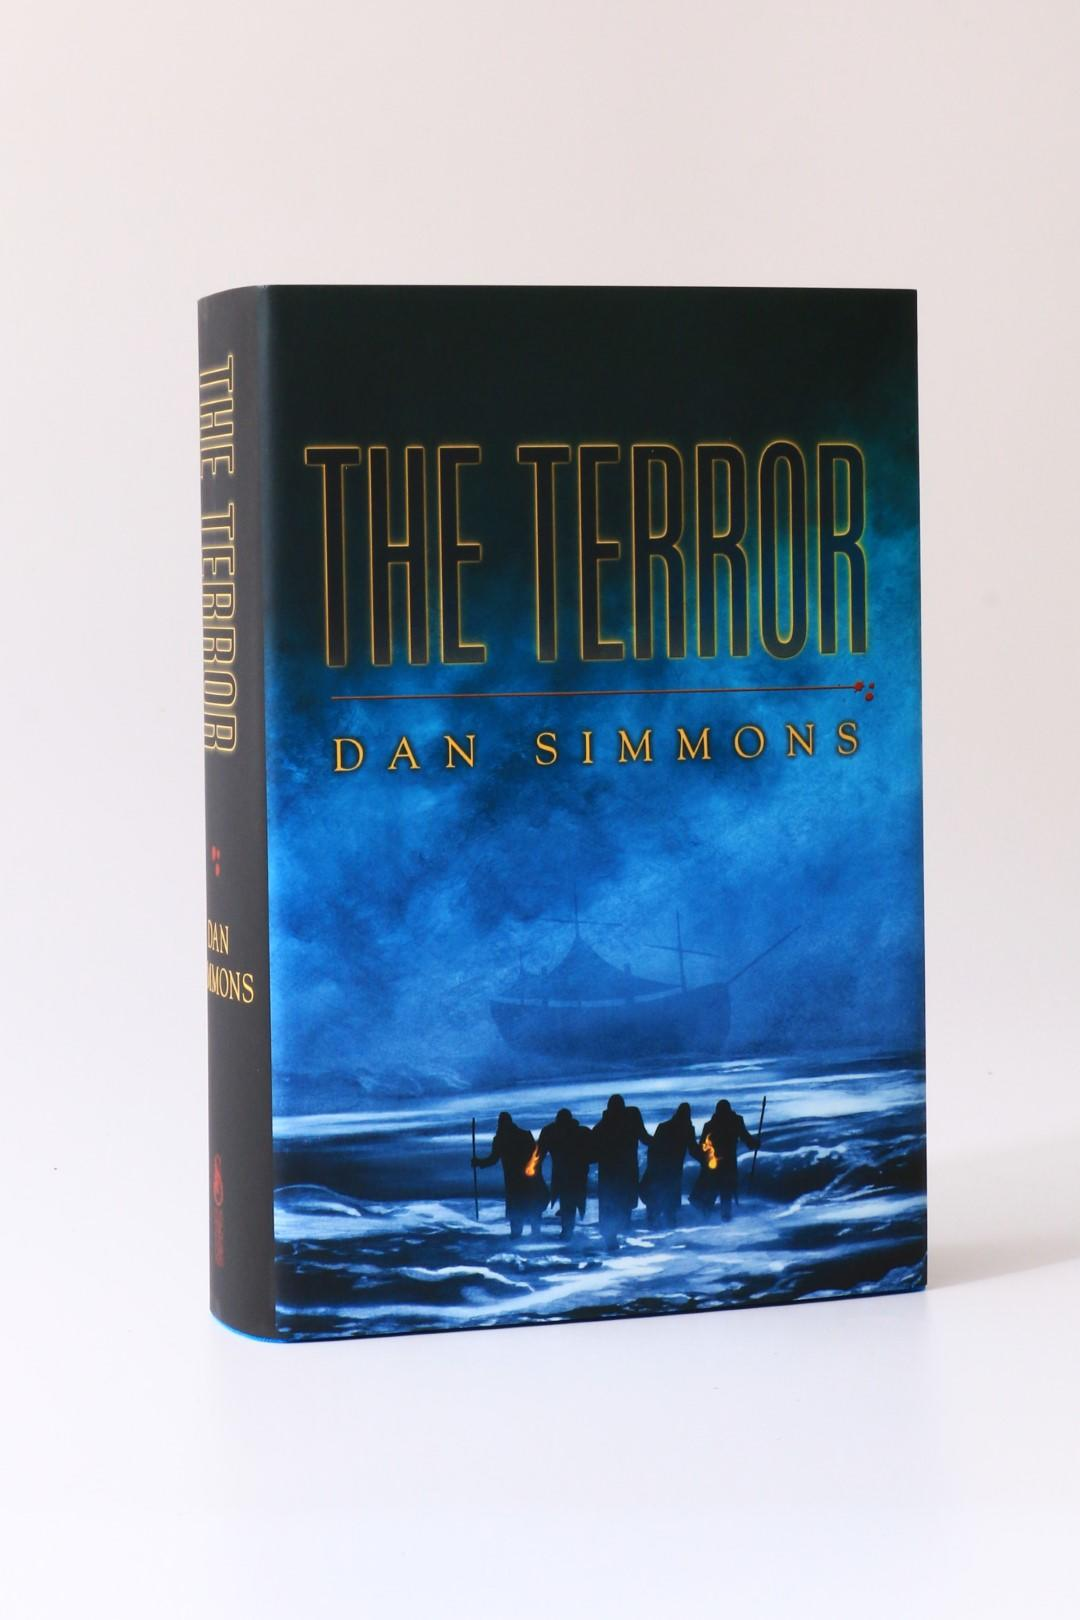 Dan Simmons - The Terror - Subterranean Press, 2009, Signed Limited Edition.